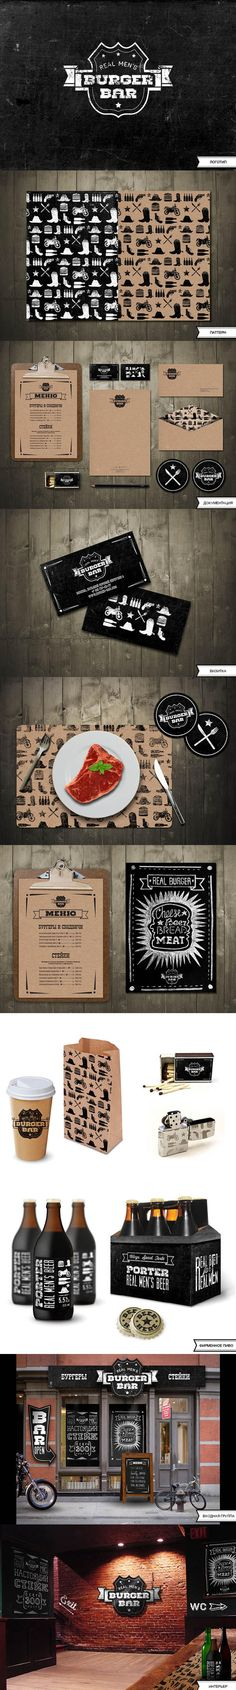 "I really like this entire suite of products. I like the patterns, the logo, the textures, etc. ""identity / REAL MEN'S BURGER BAR by Masha Solyankina"" Corporate Design, Graphic Design Branding, Corporate Identity, Identity Design, Typography Design, Brand Identity, Visual Identity, Food Branding, Restaurant Branding"